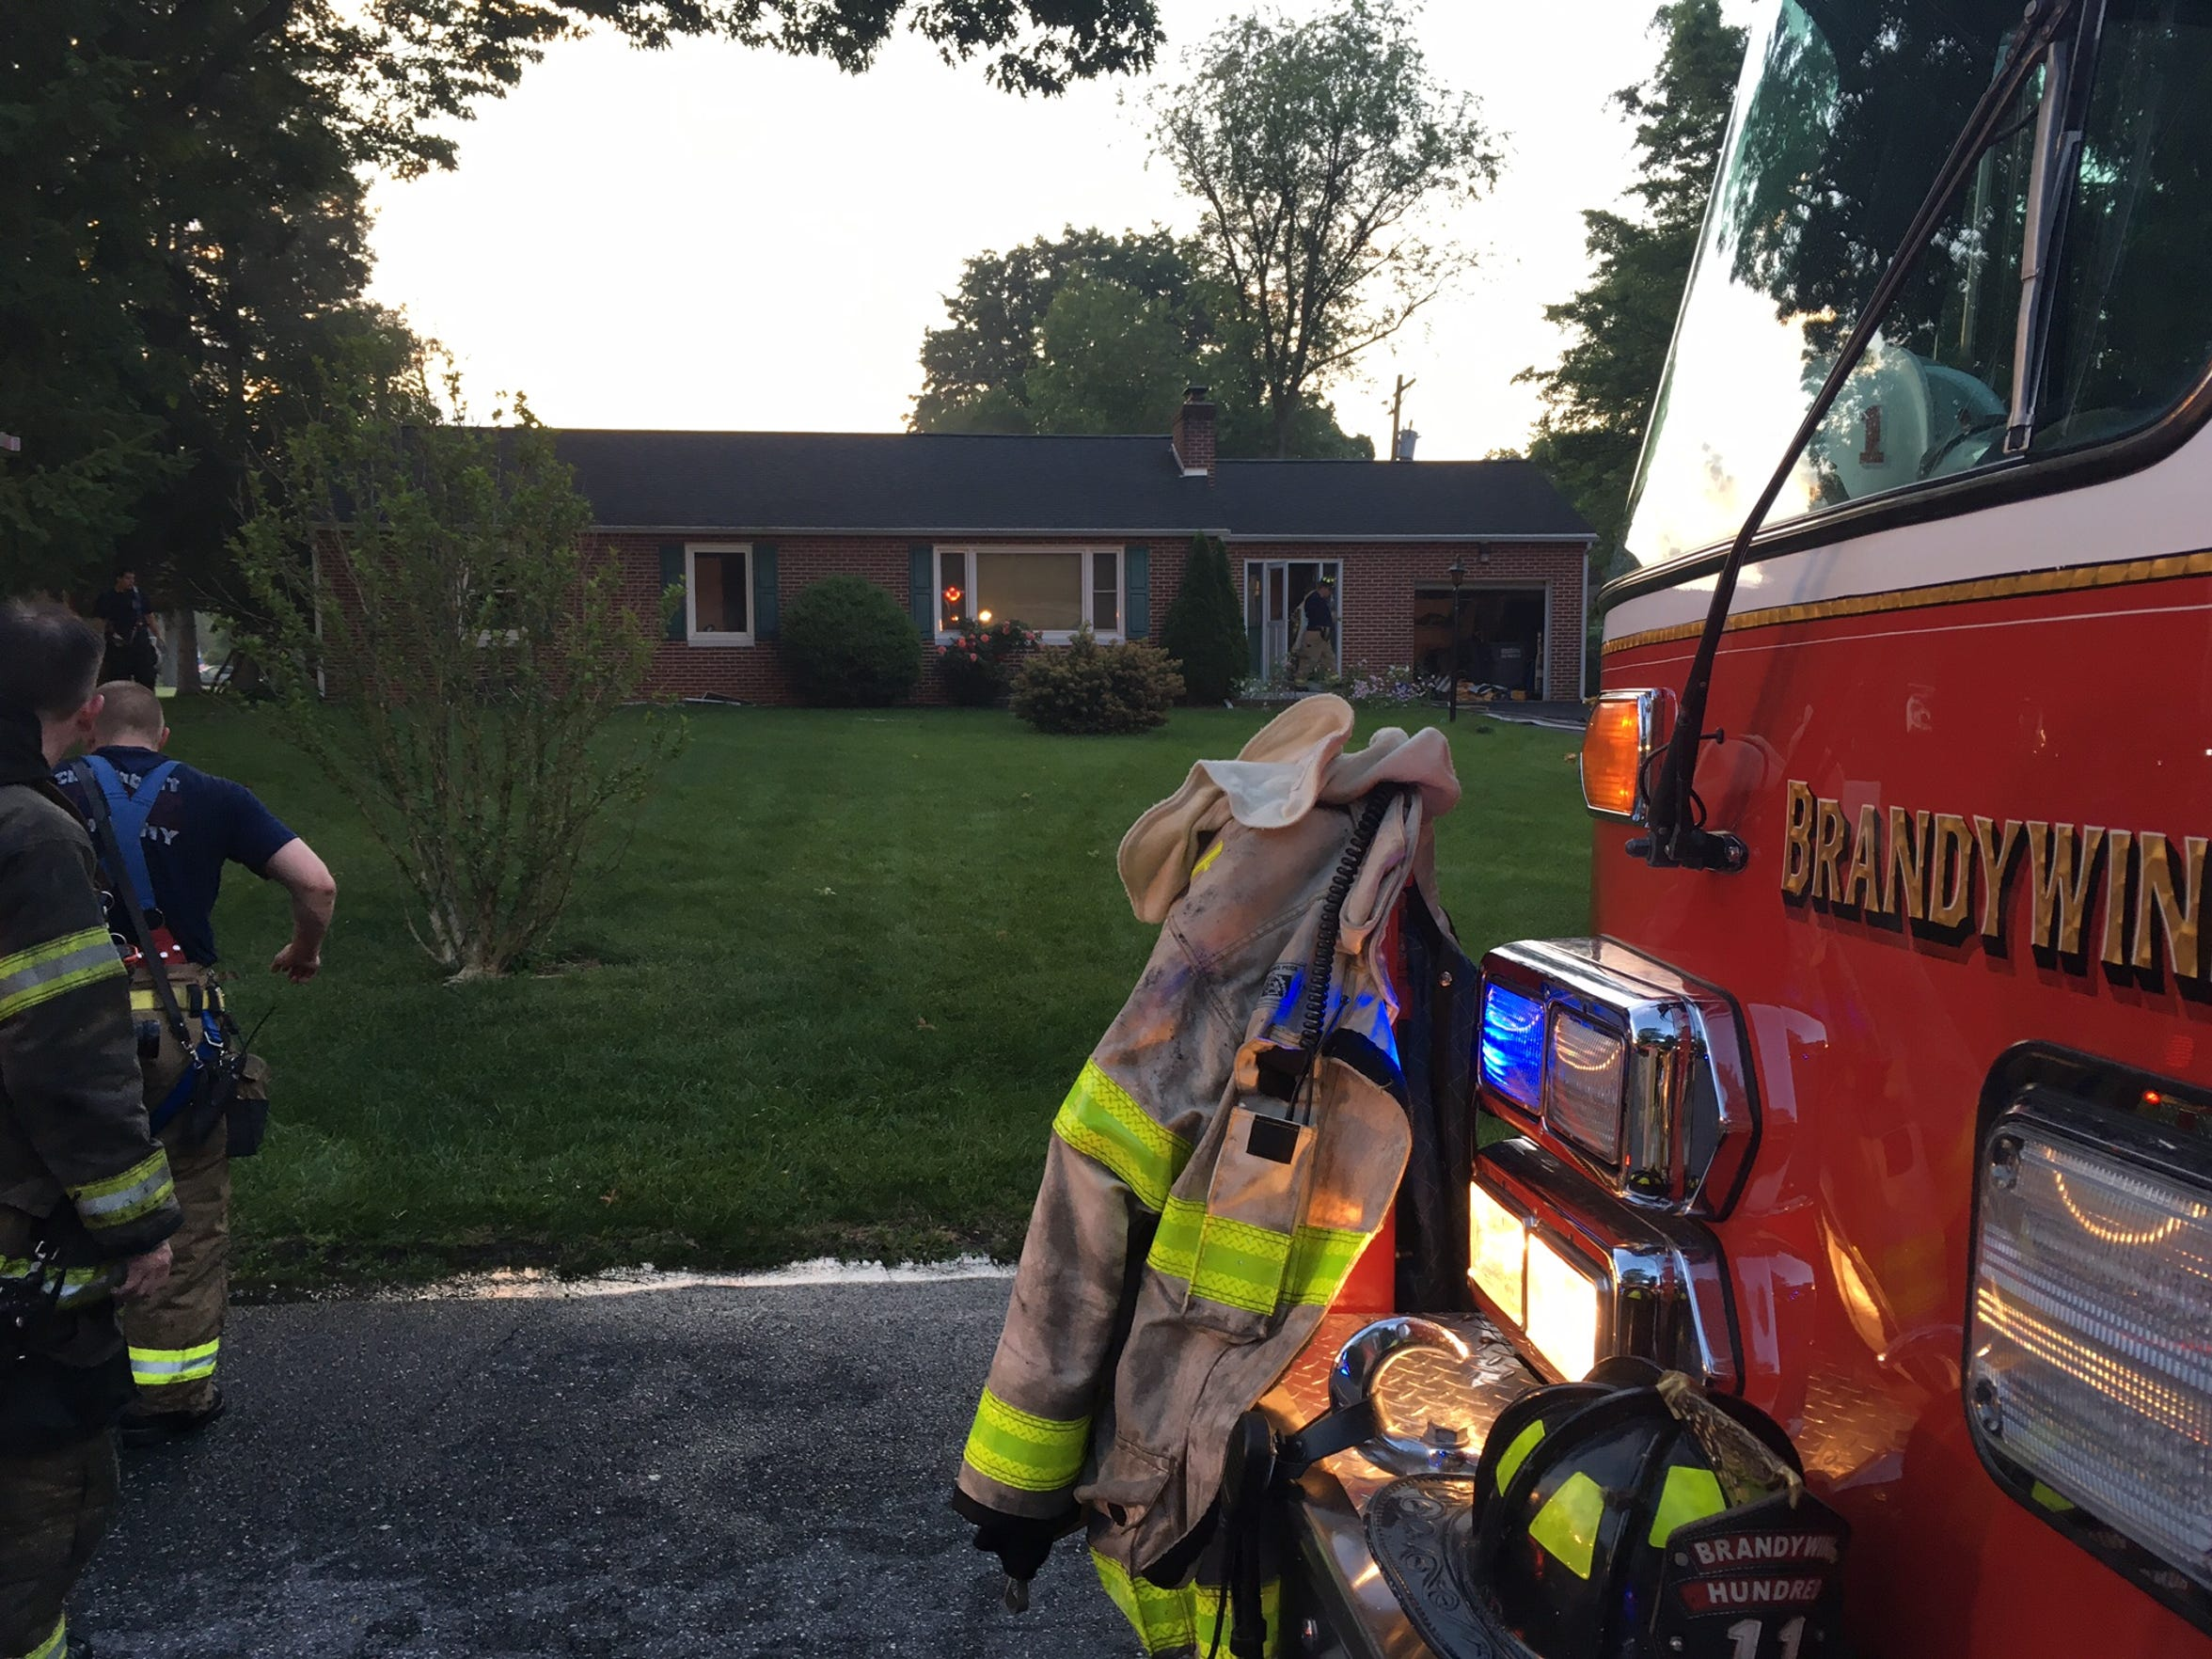 One resident was injured in a house fire Wednesday morning in Brandywine Hundred.